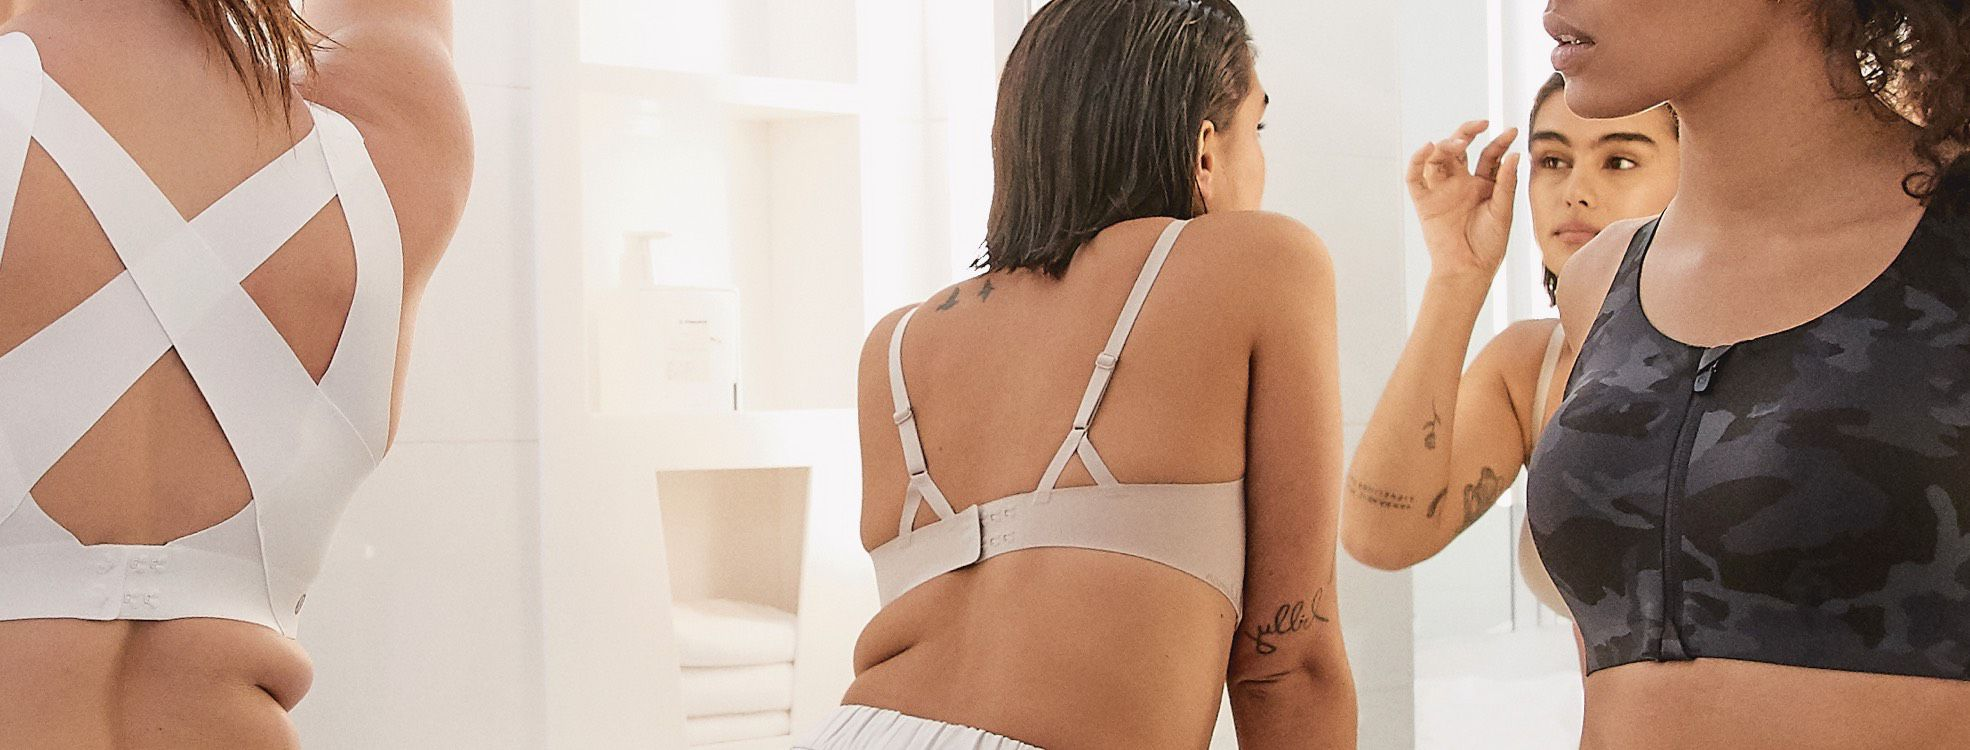 10b74b49d1d3 Undercover comfortFind innovative bra and underwear designs with minimal  construction for maximum comfort.